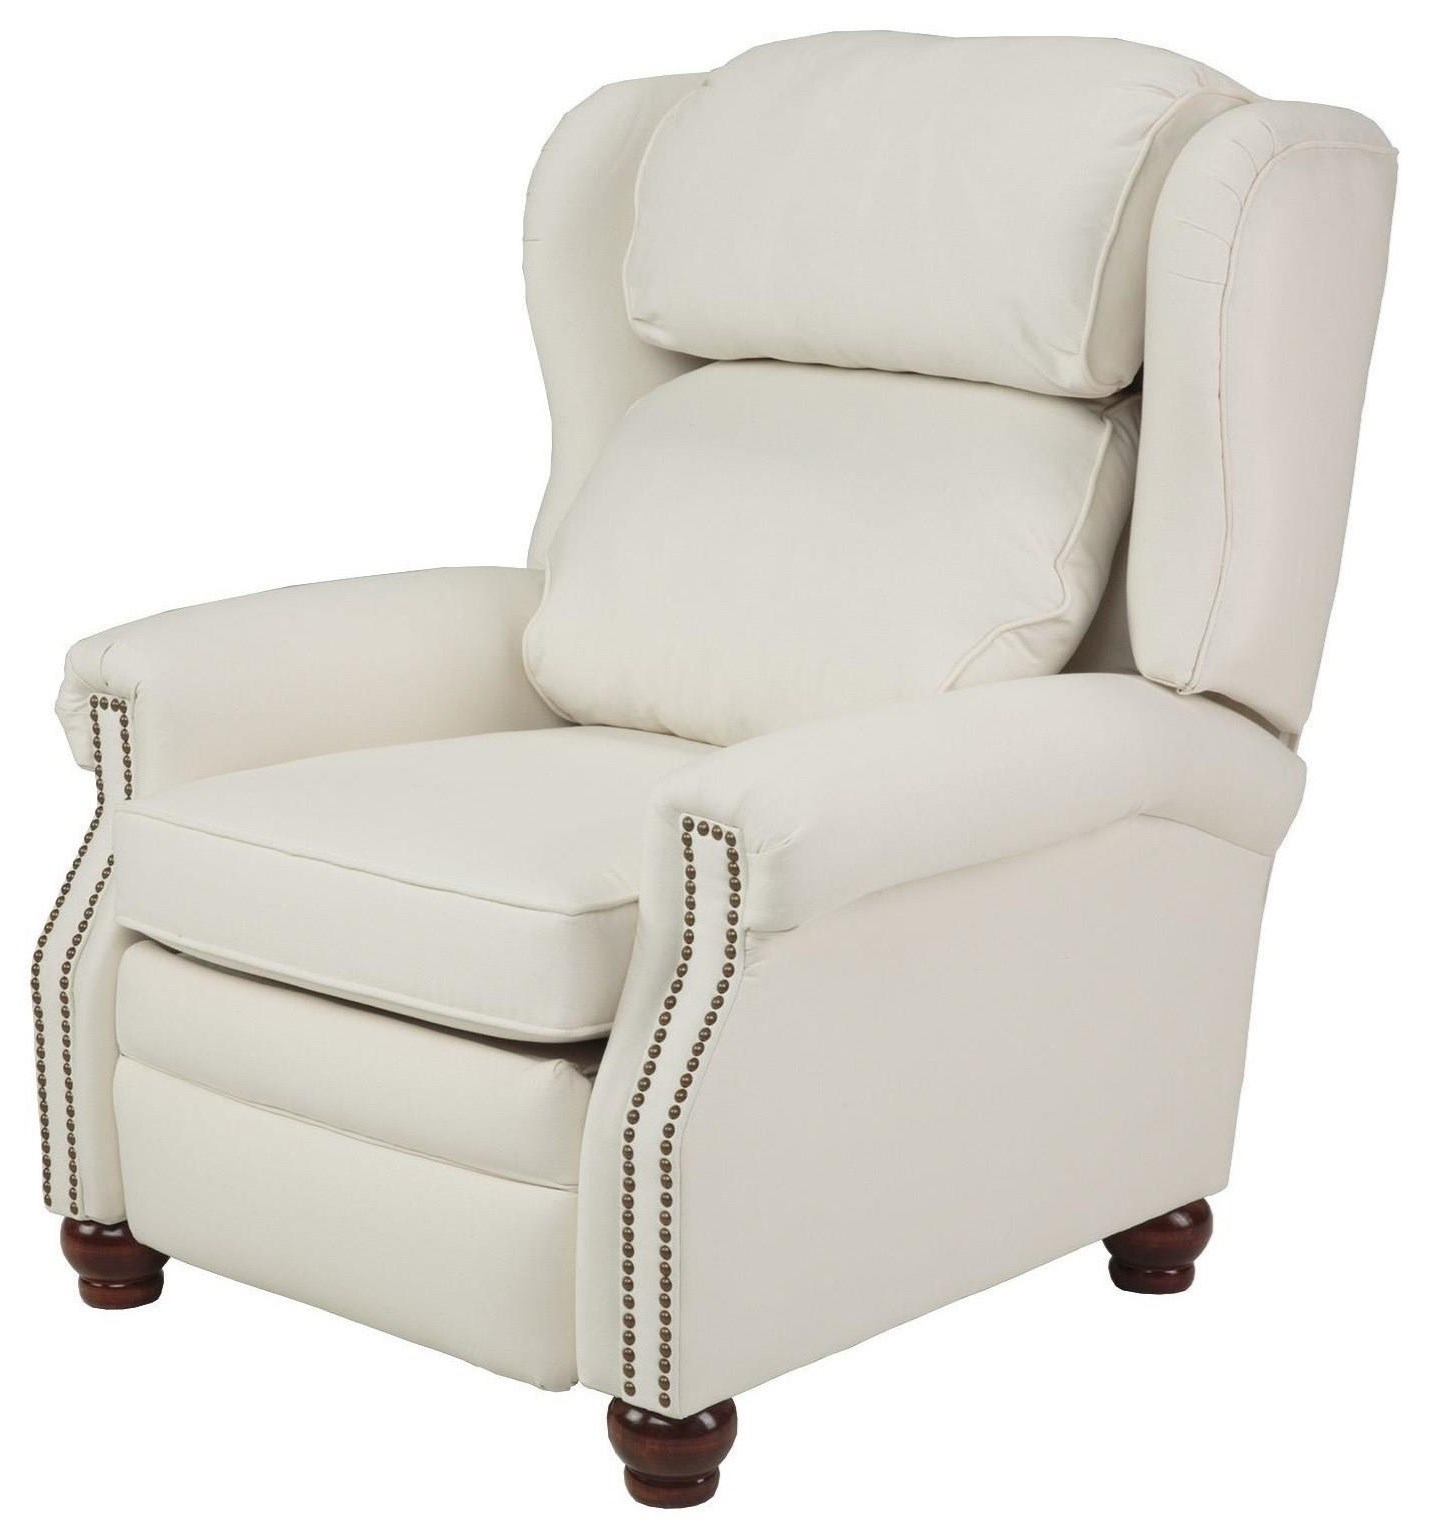 Bradley Wingback Recliner by Justice Furniture & Bedding at Crowley Furniture & Mattress